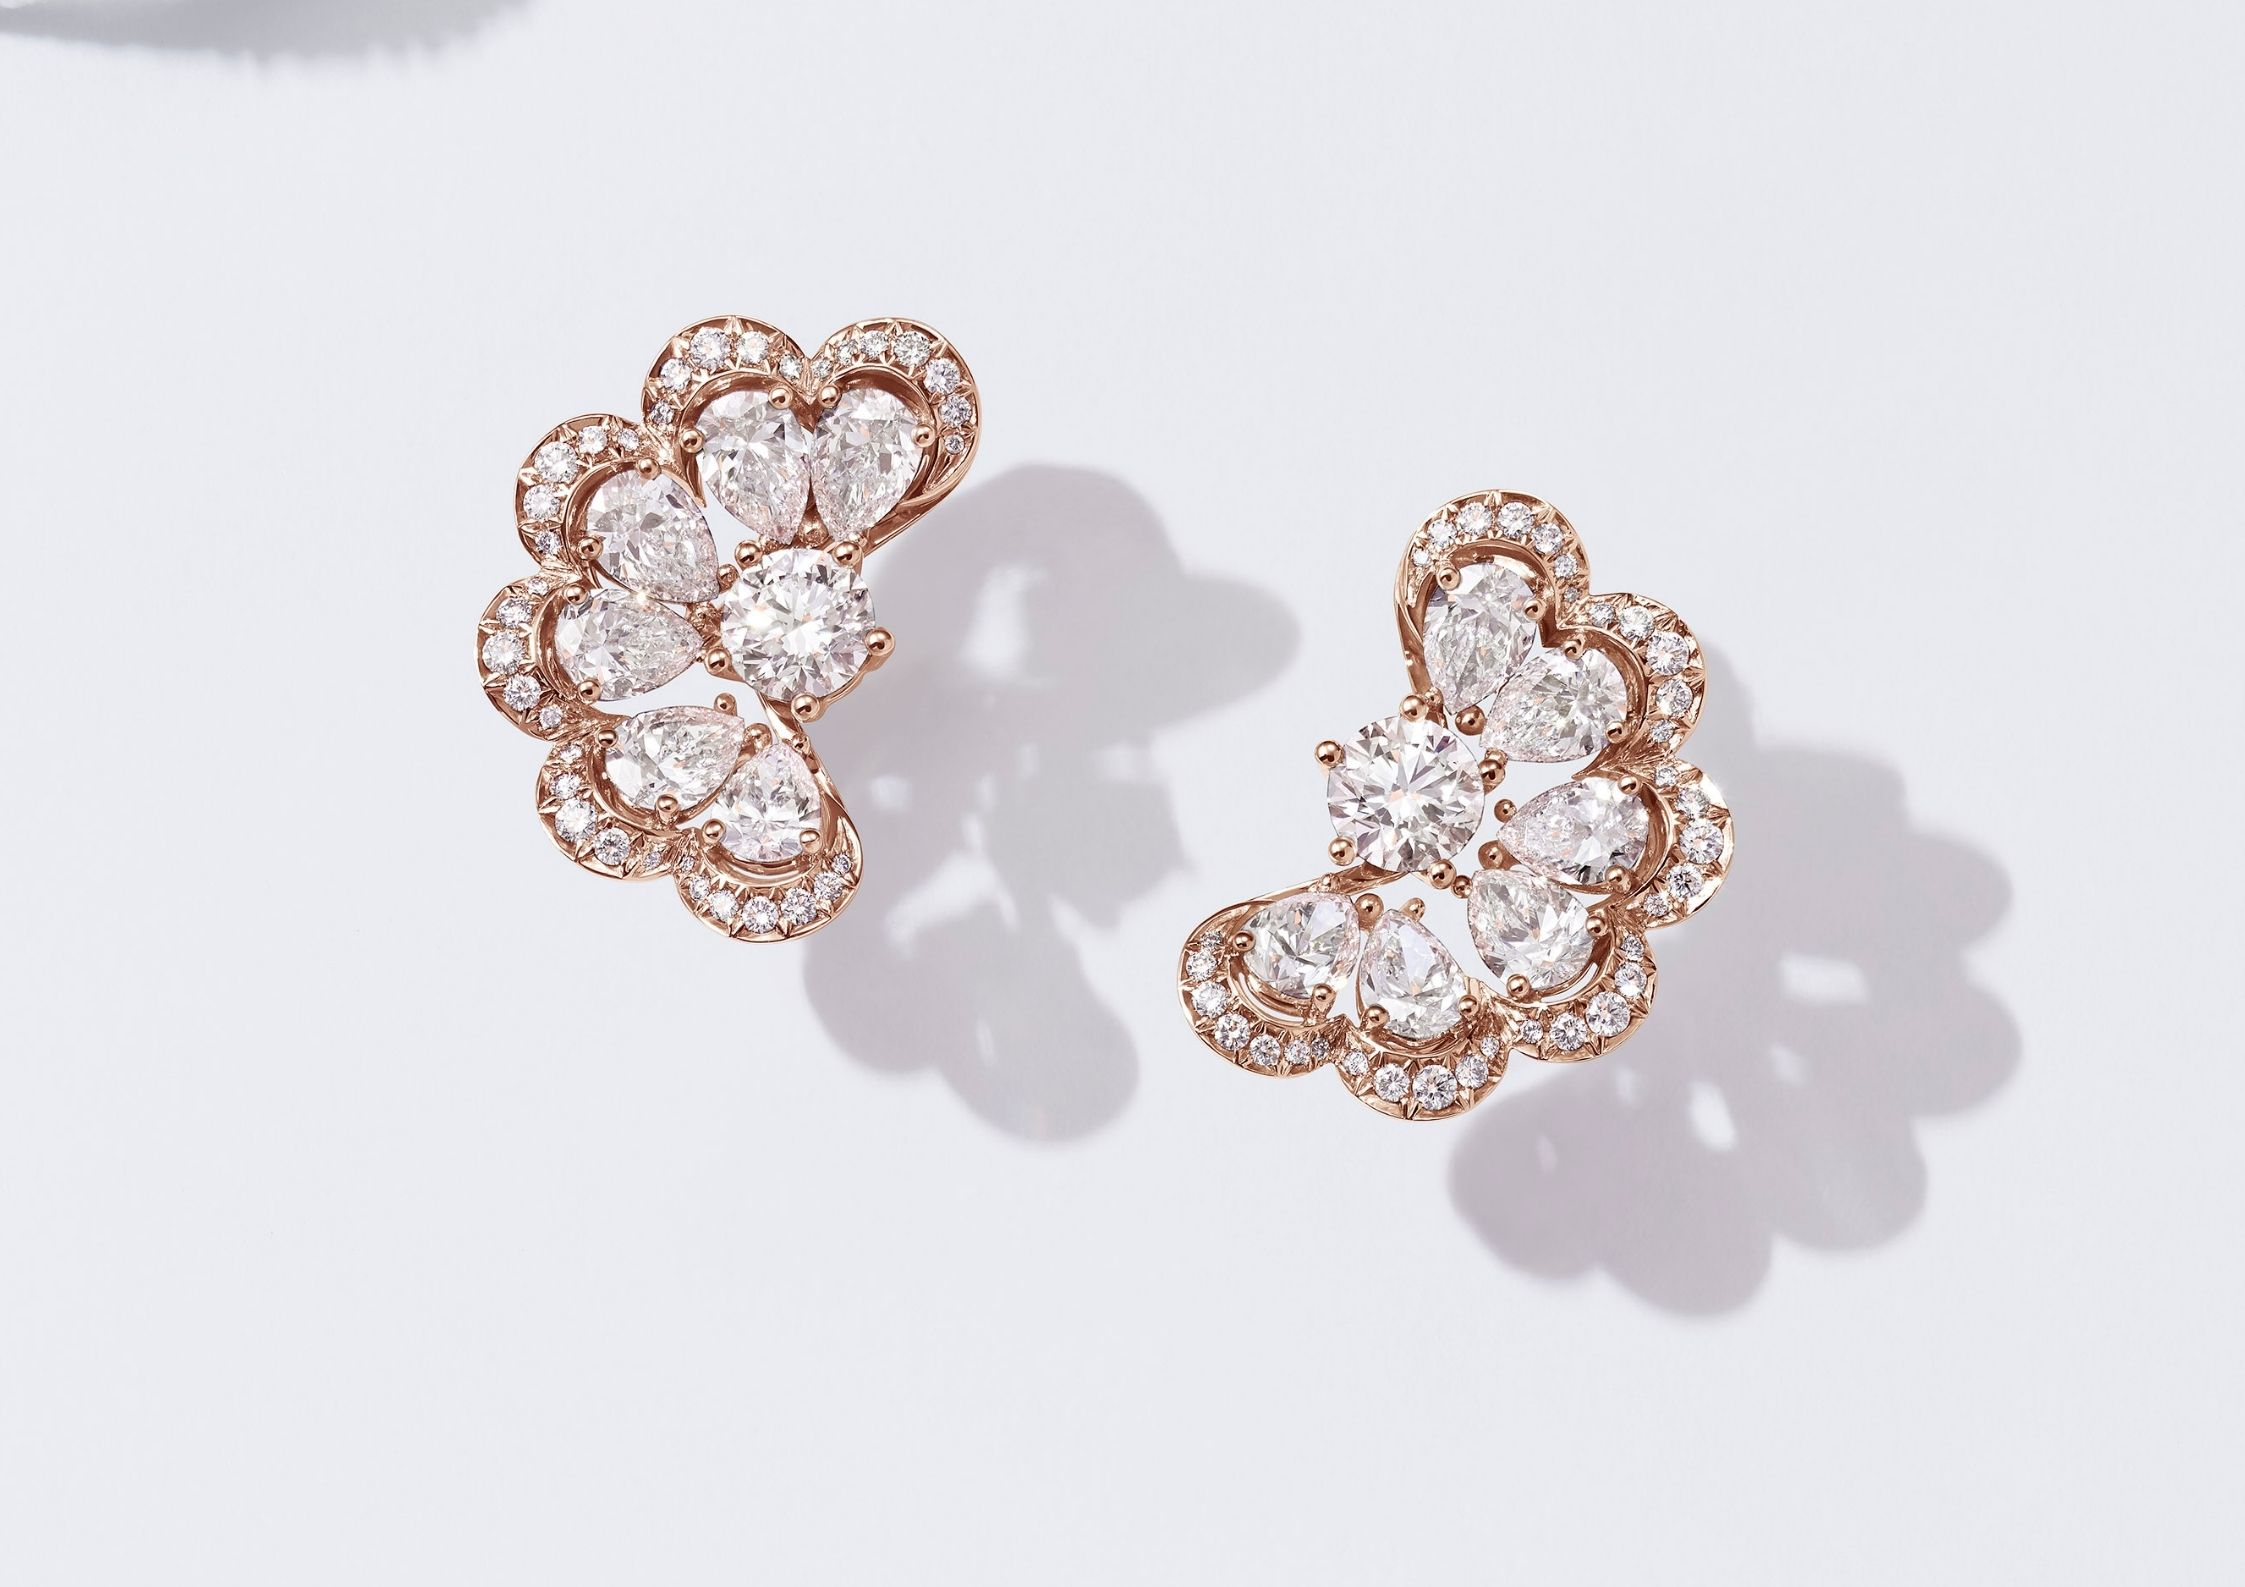 Chopard Precious Lace high jewellery collection